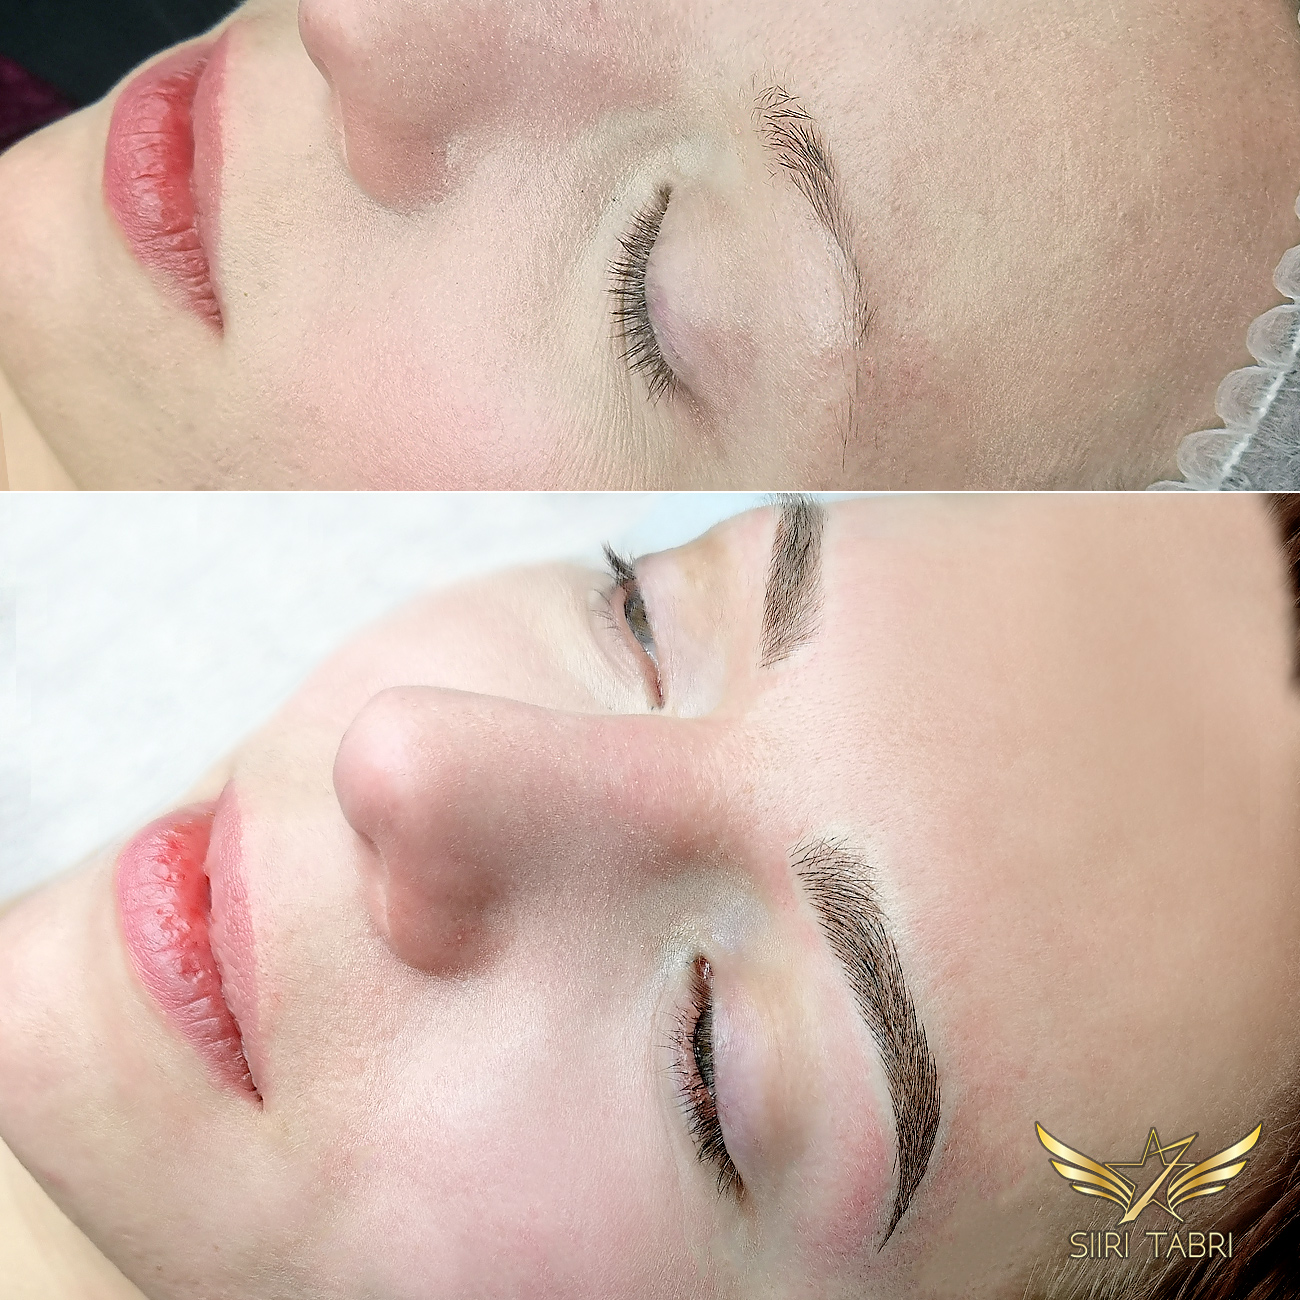 Light microblading. Just another pair of beautiful Light microblading brows. What a change.